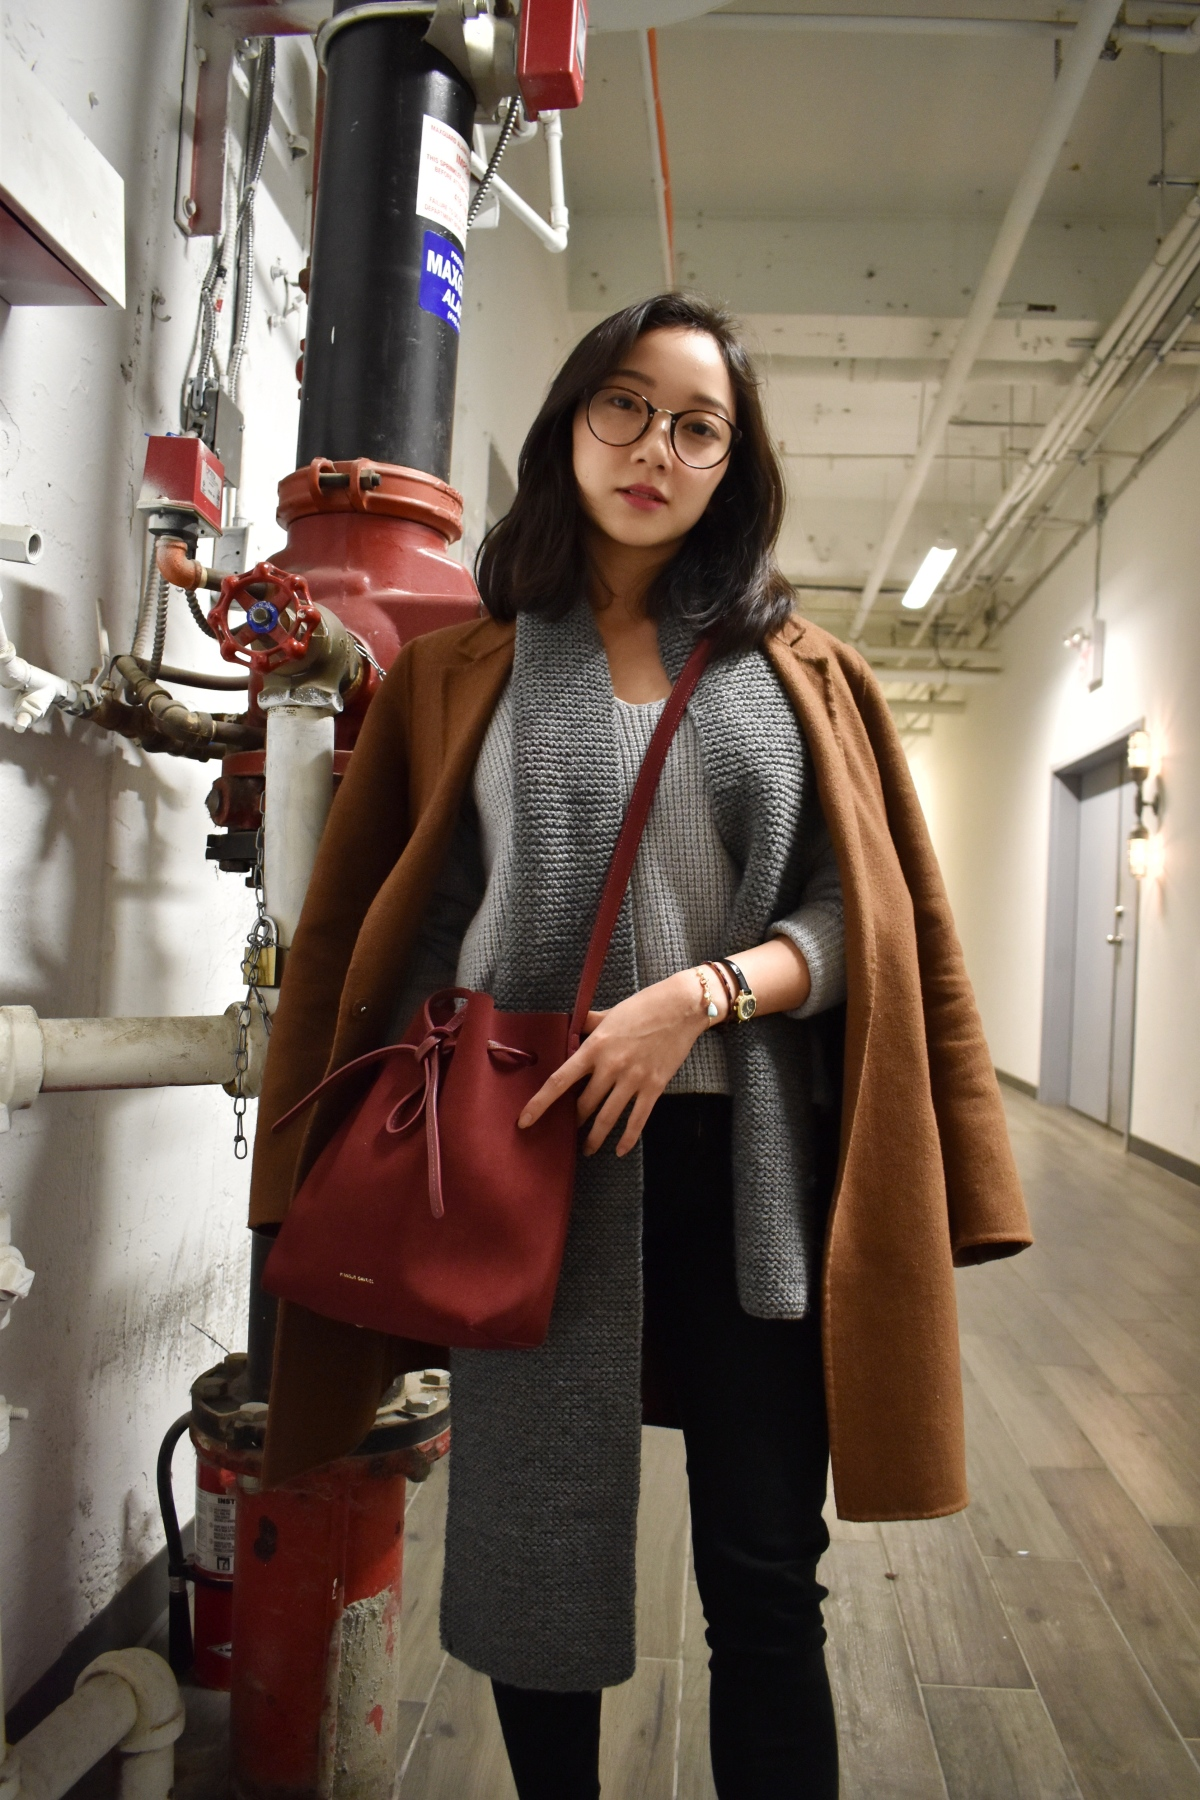 Fun little shoot in the hallways behind a Hale cafe Toronto. Wearing a brown hand made coat by Zara, Mansur Gavriel Mini Bucket Bag in Rococo, Wilfred Wolter sweater, knitted scarf, Mother black denim jeans, Olivia burton mini vintage watch. Korean beauty makeup look.